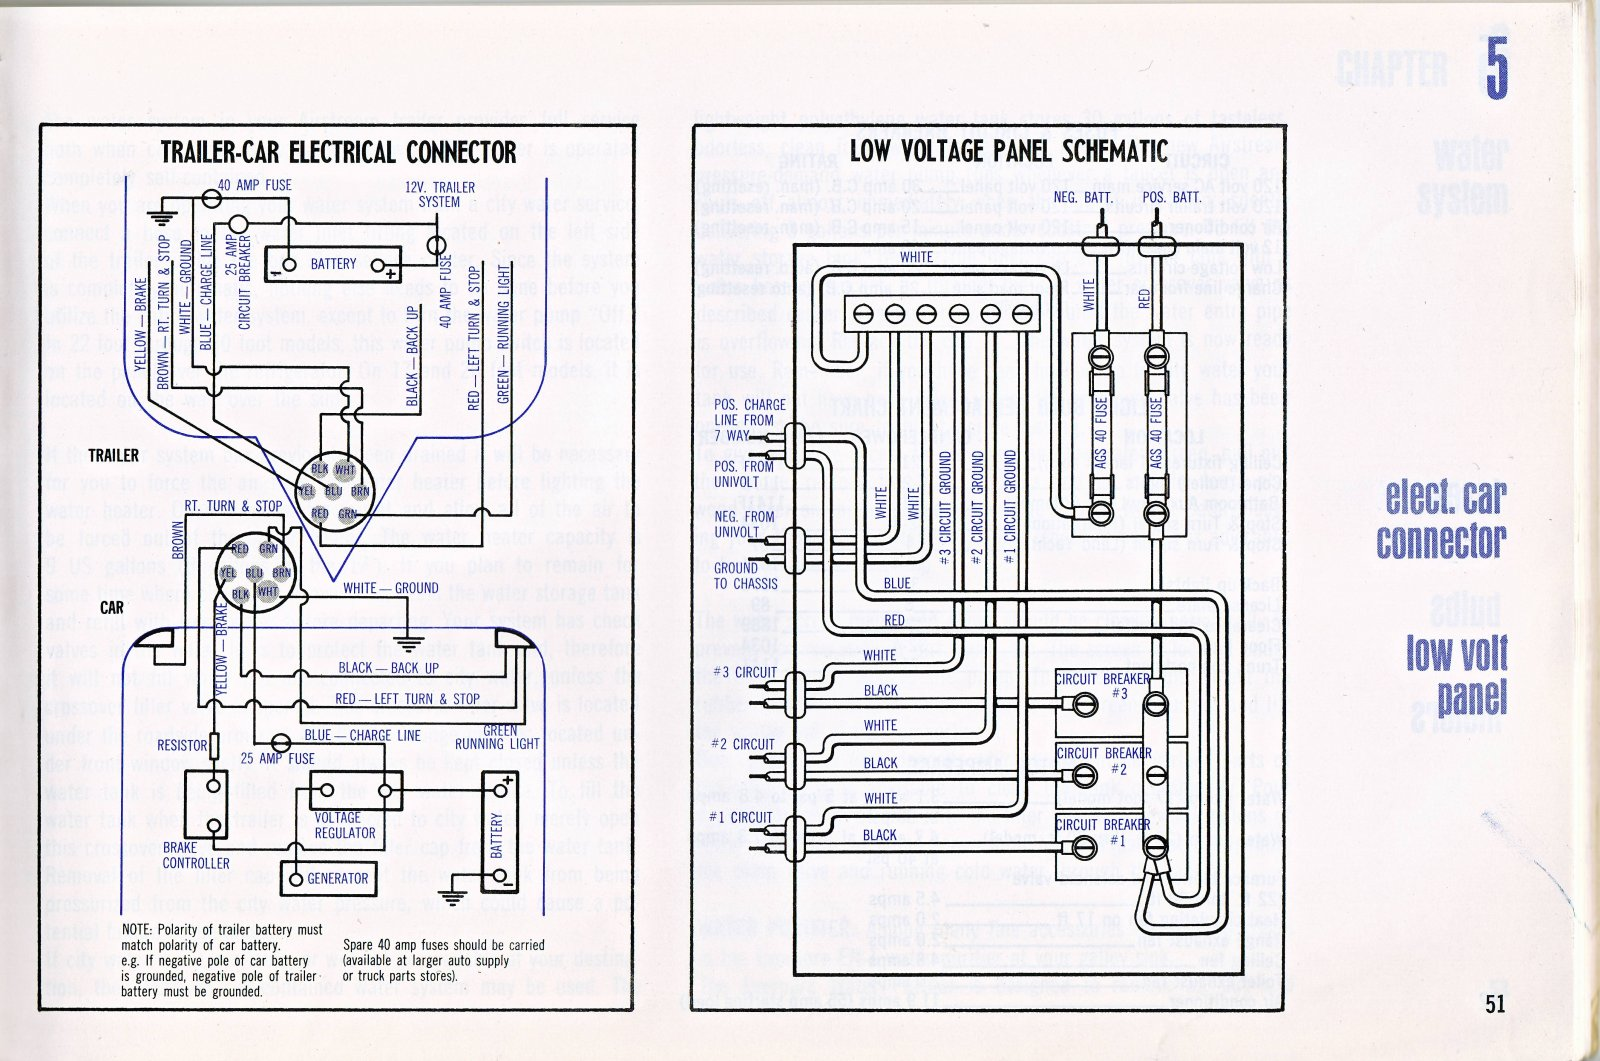 airstream wiring diagram 110v | wiring library airstream 110v wiring diagram airstream trailer wiring diagram